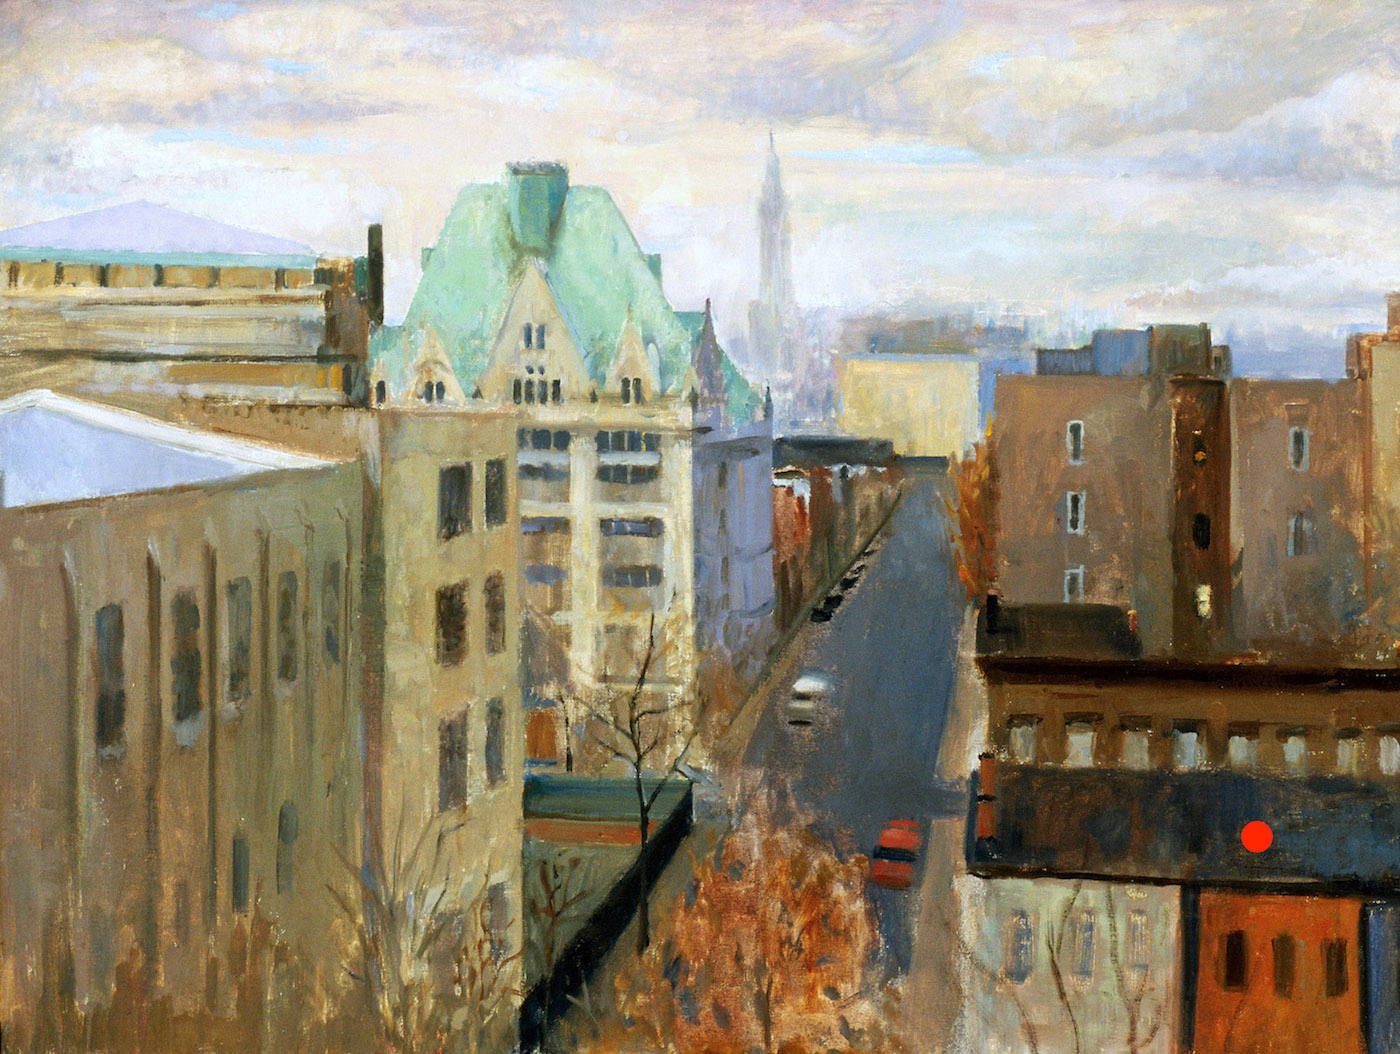 Vanderbilt Avenue, 24 x 32 inches, oil on linen.